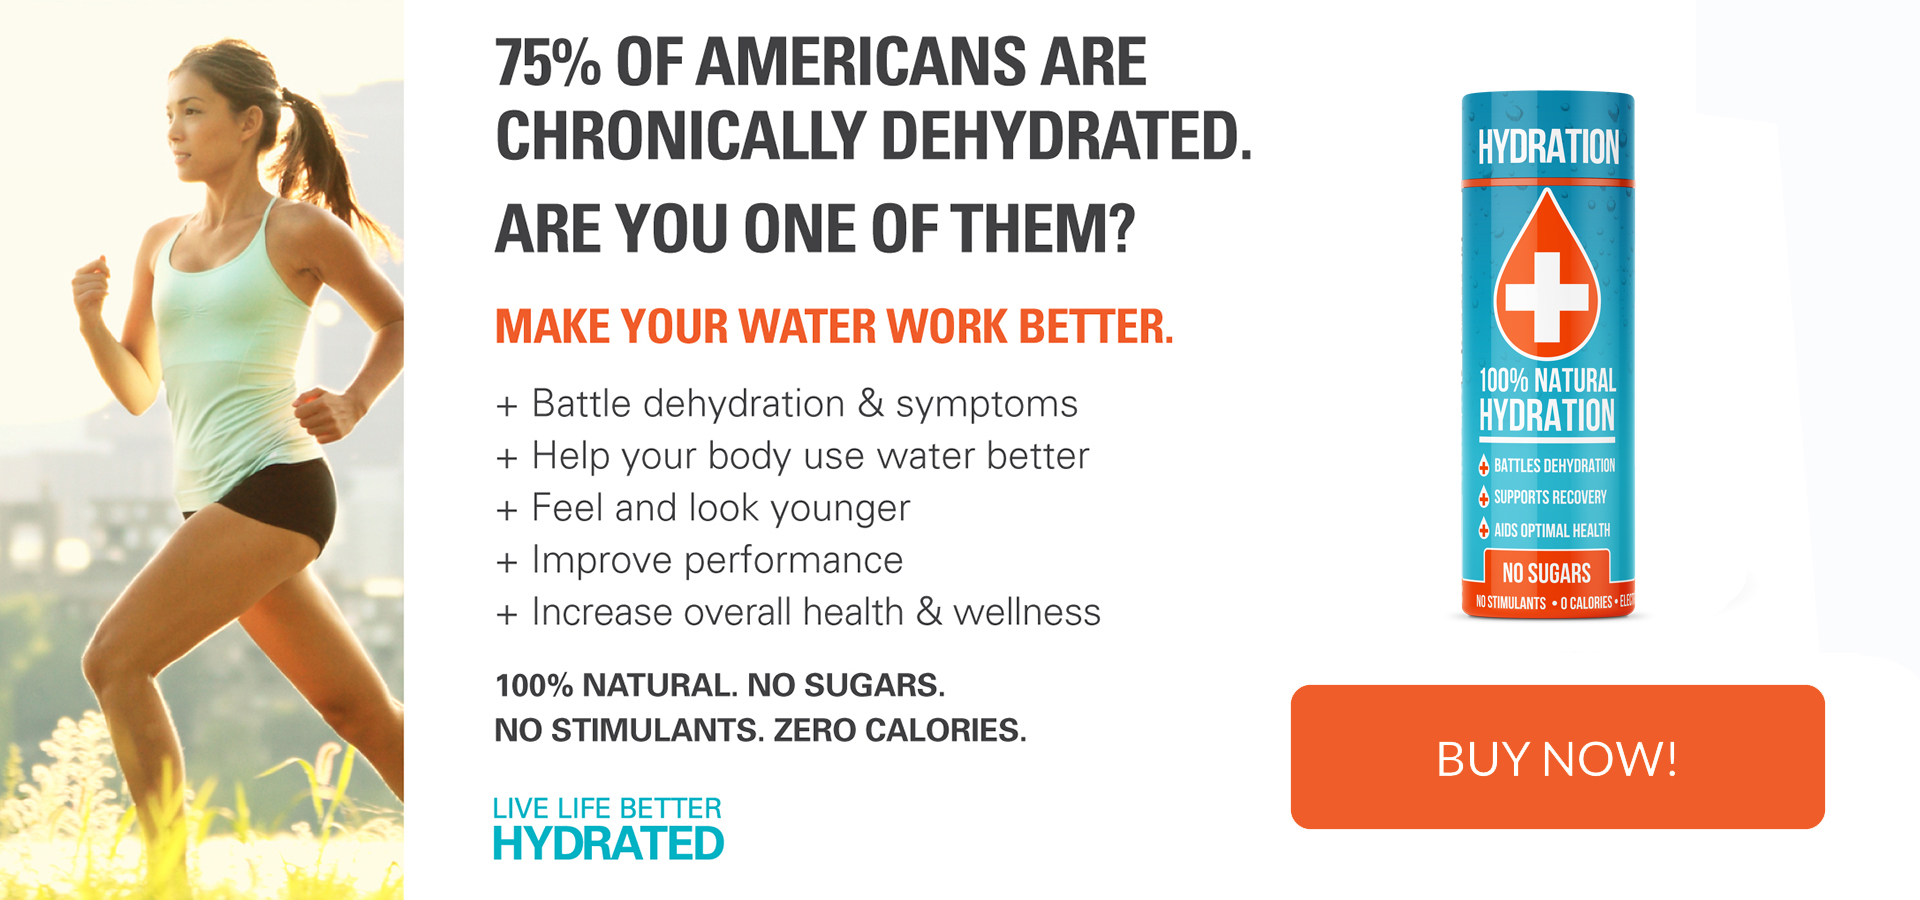 75% of Americans Are Chronically Dehydrated